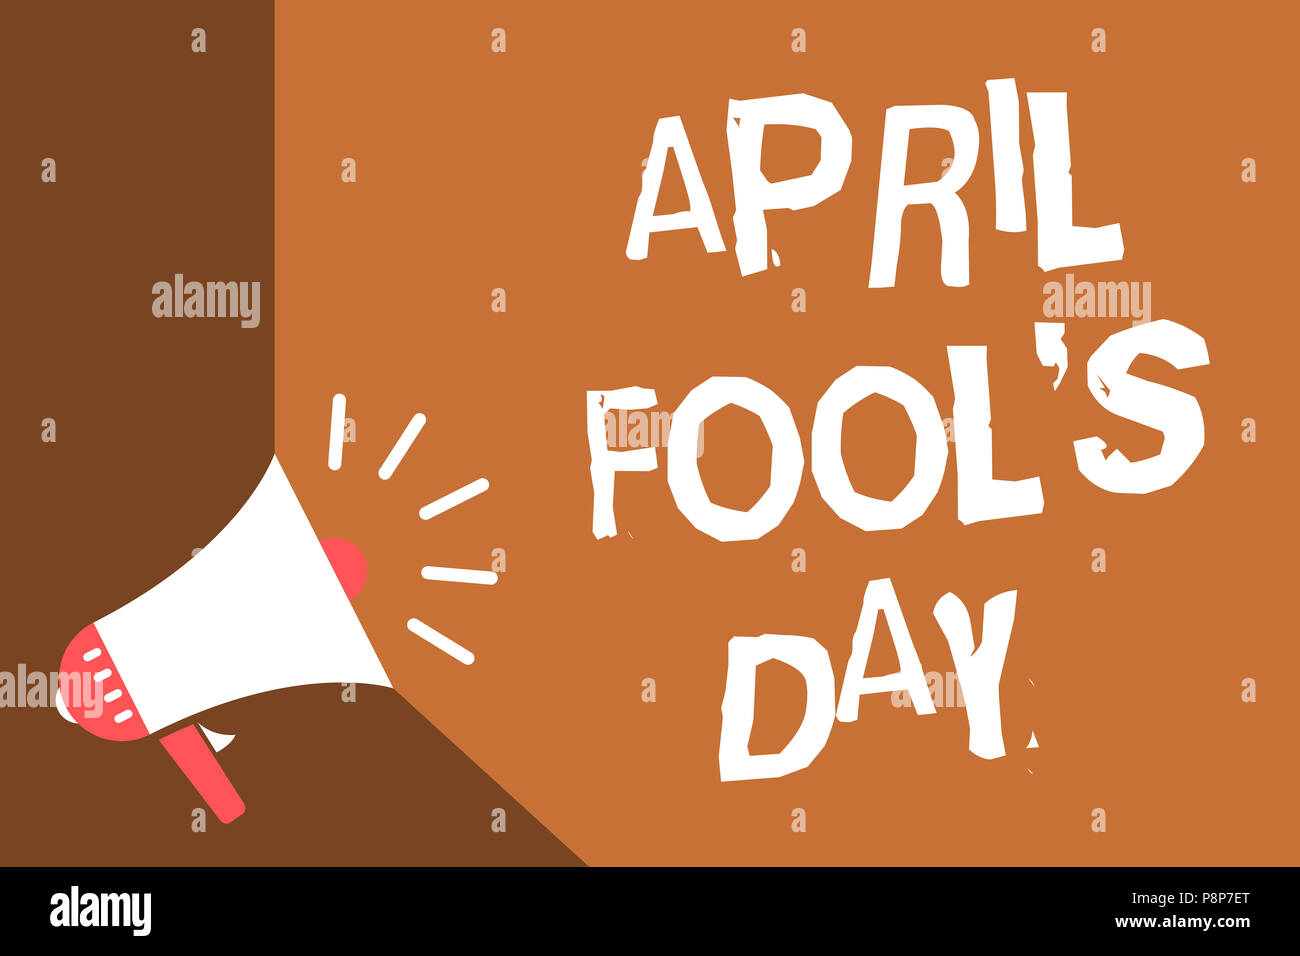 Writing note showing April Fool s is Day. Business photo showcasing Practical jokes humor pranks Celebration funny foolish News flash burning issue so - Stock Image